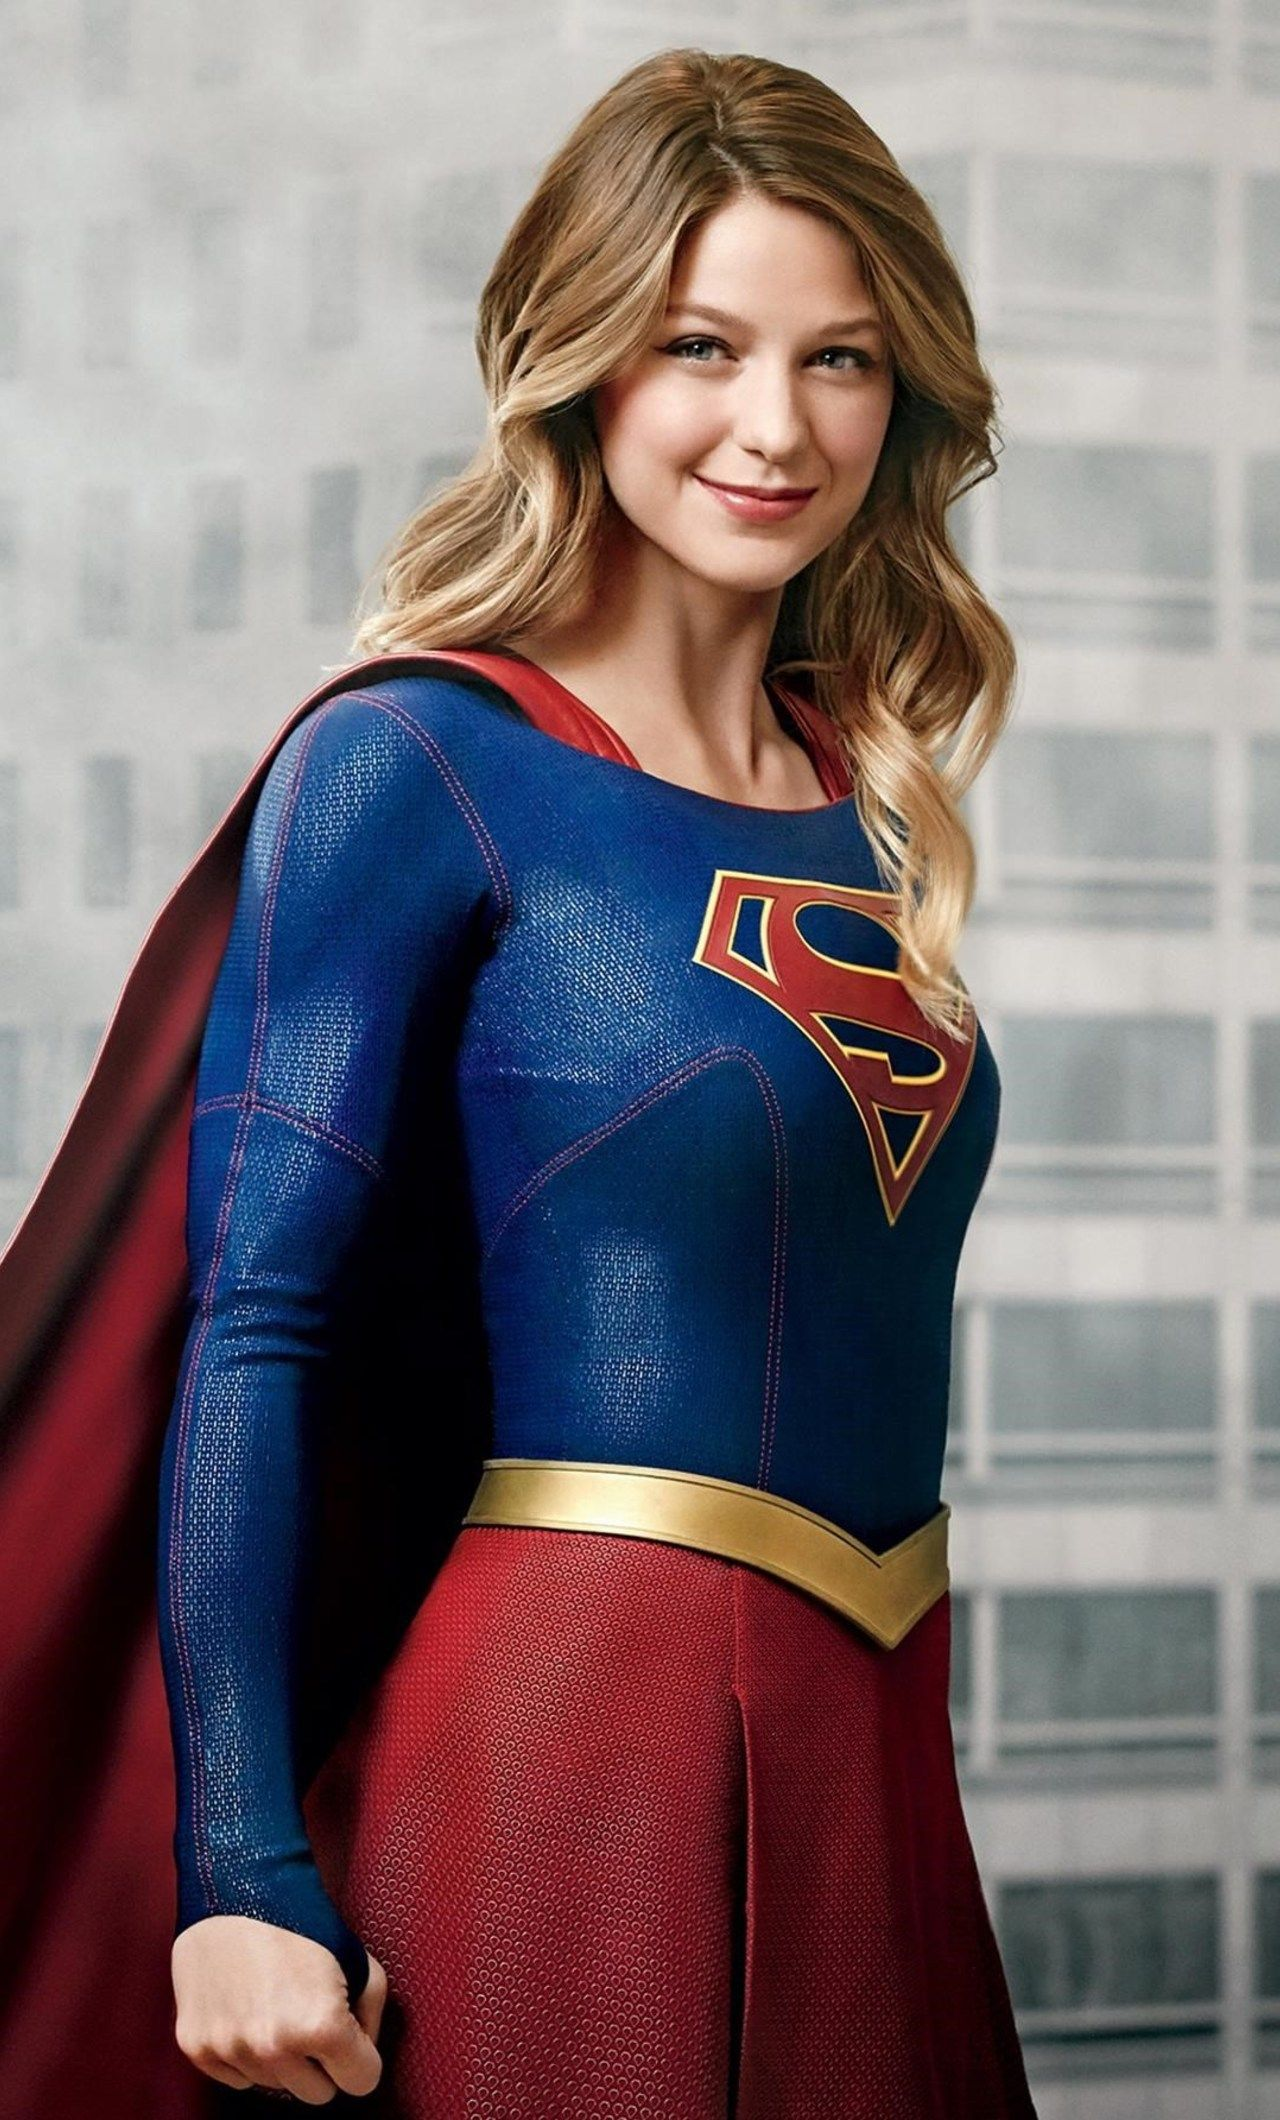 1280x2120 1280x2120 Supergirl Tv Show iPhone 6+ HD 4k Wallpapers, Images ...